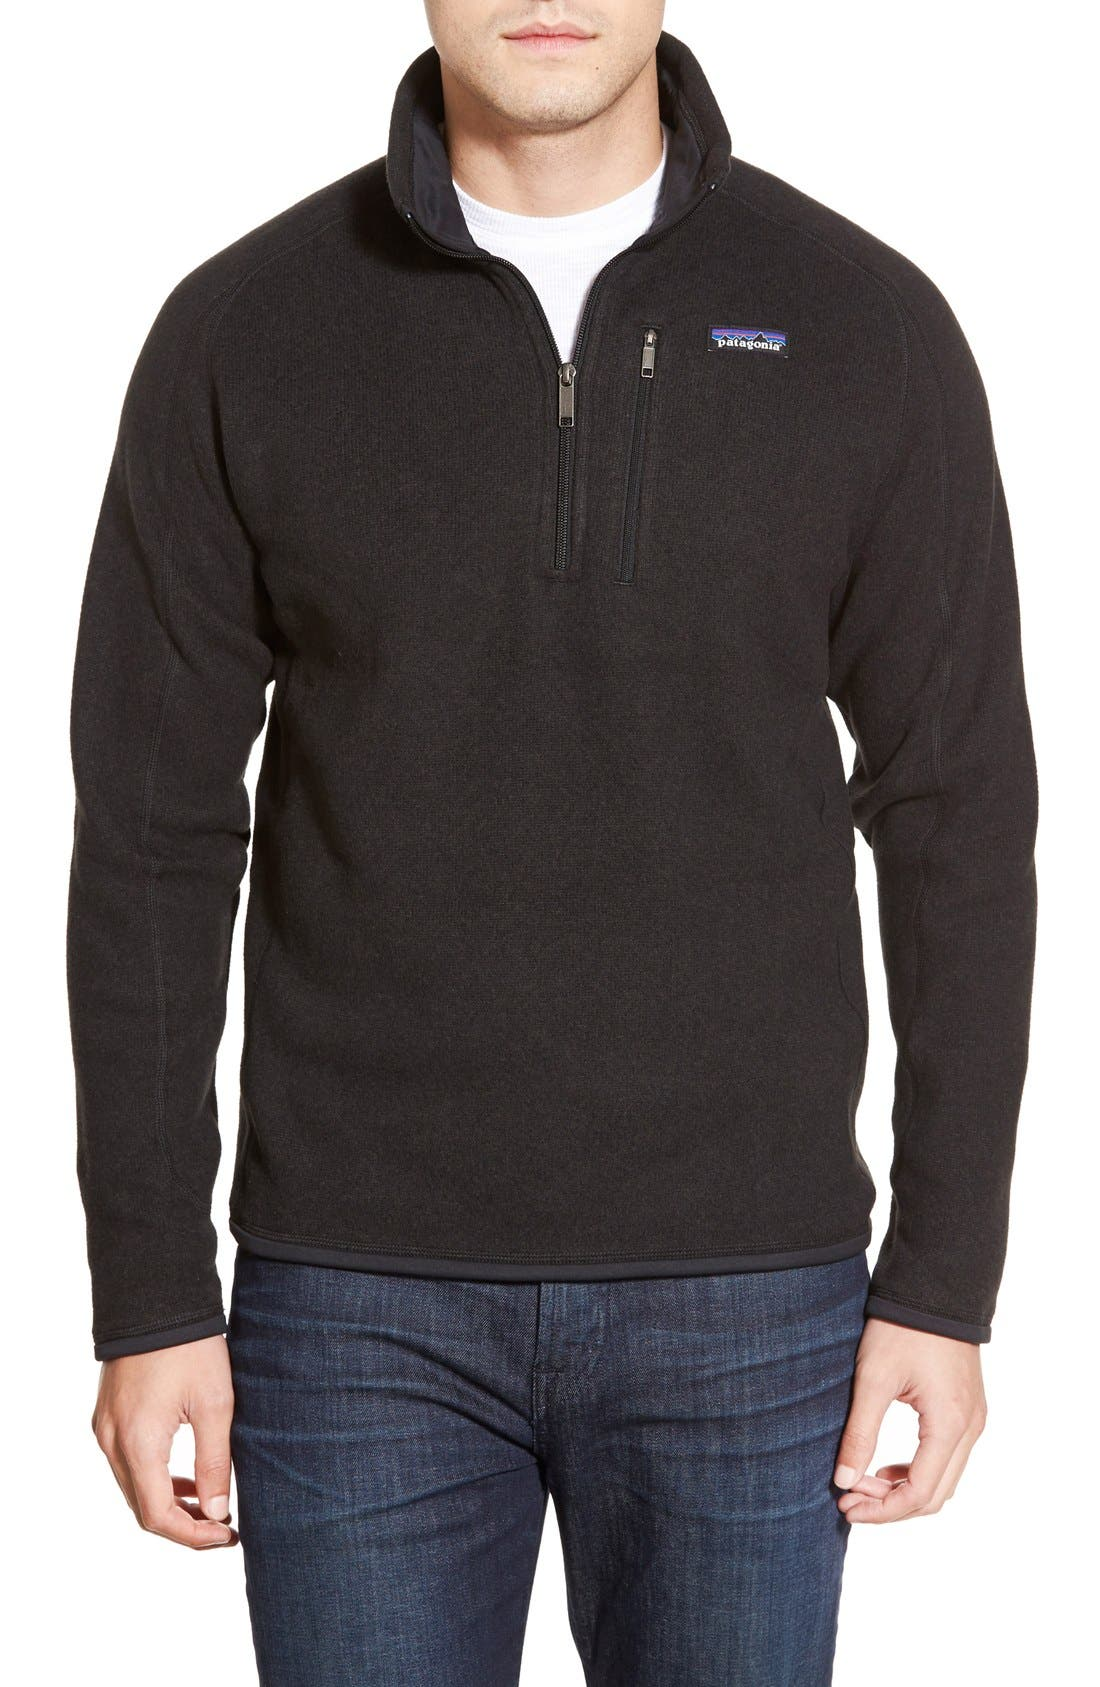 Patagonia 'Better Sweater' Quarter Zip Pullover